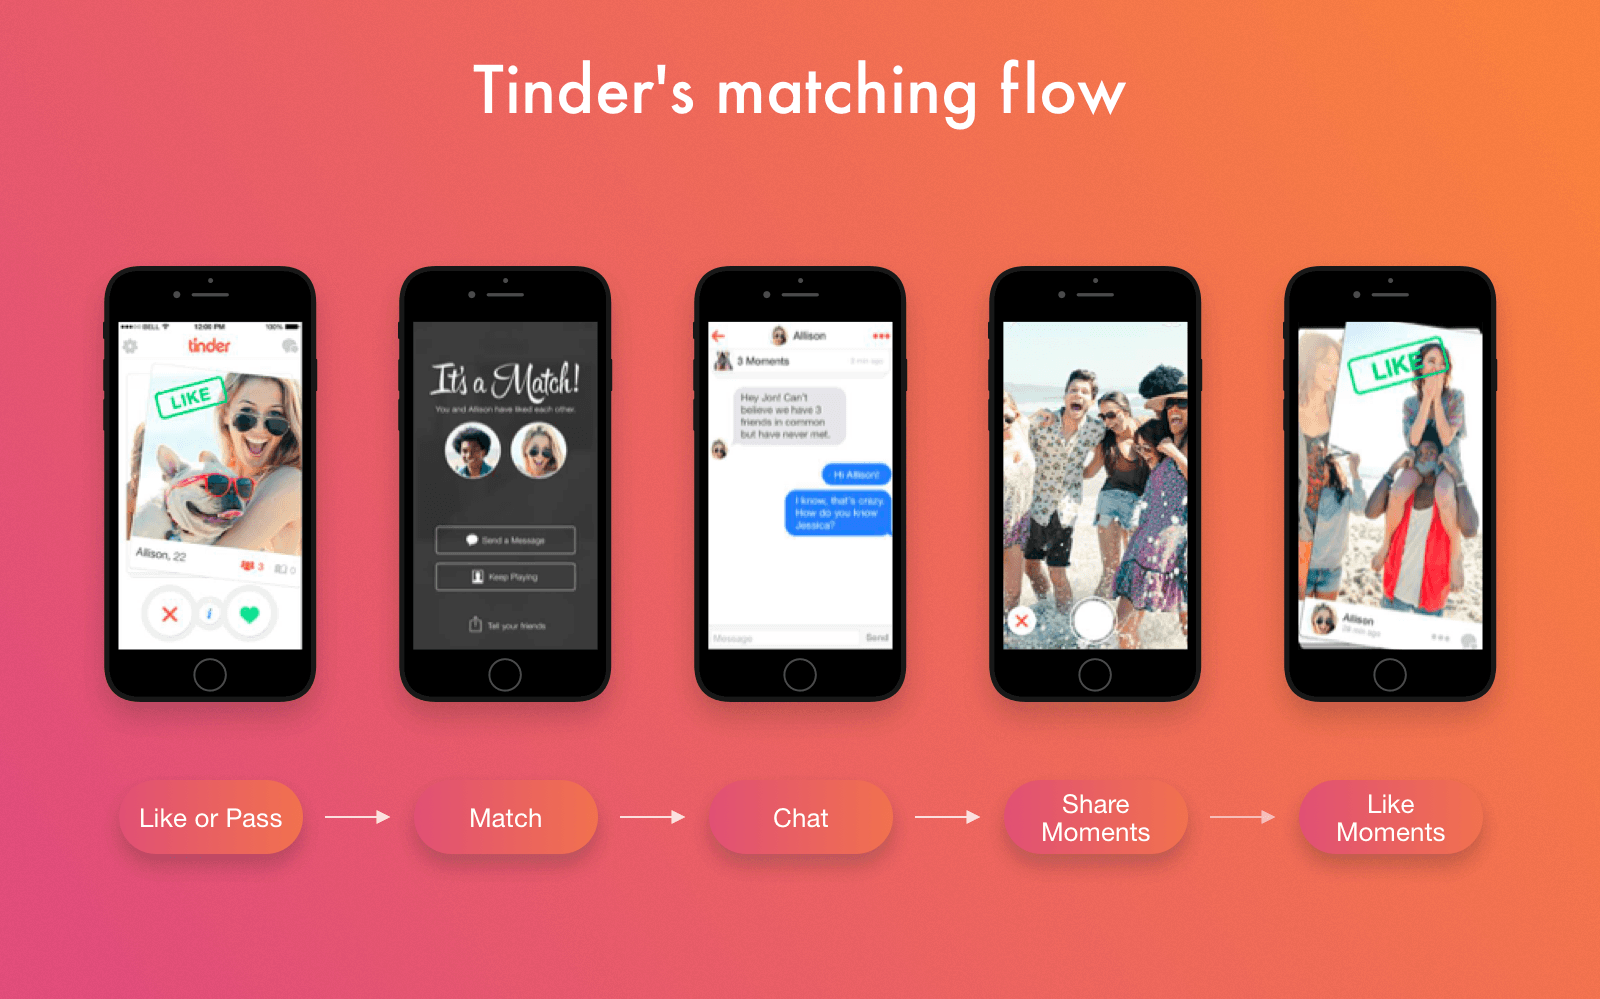 Tinder matching flow